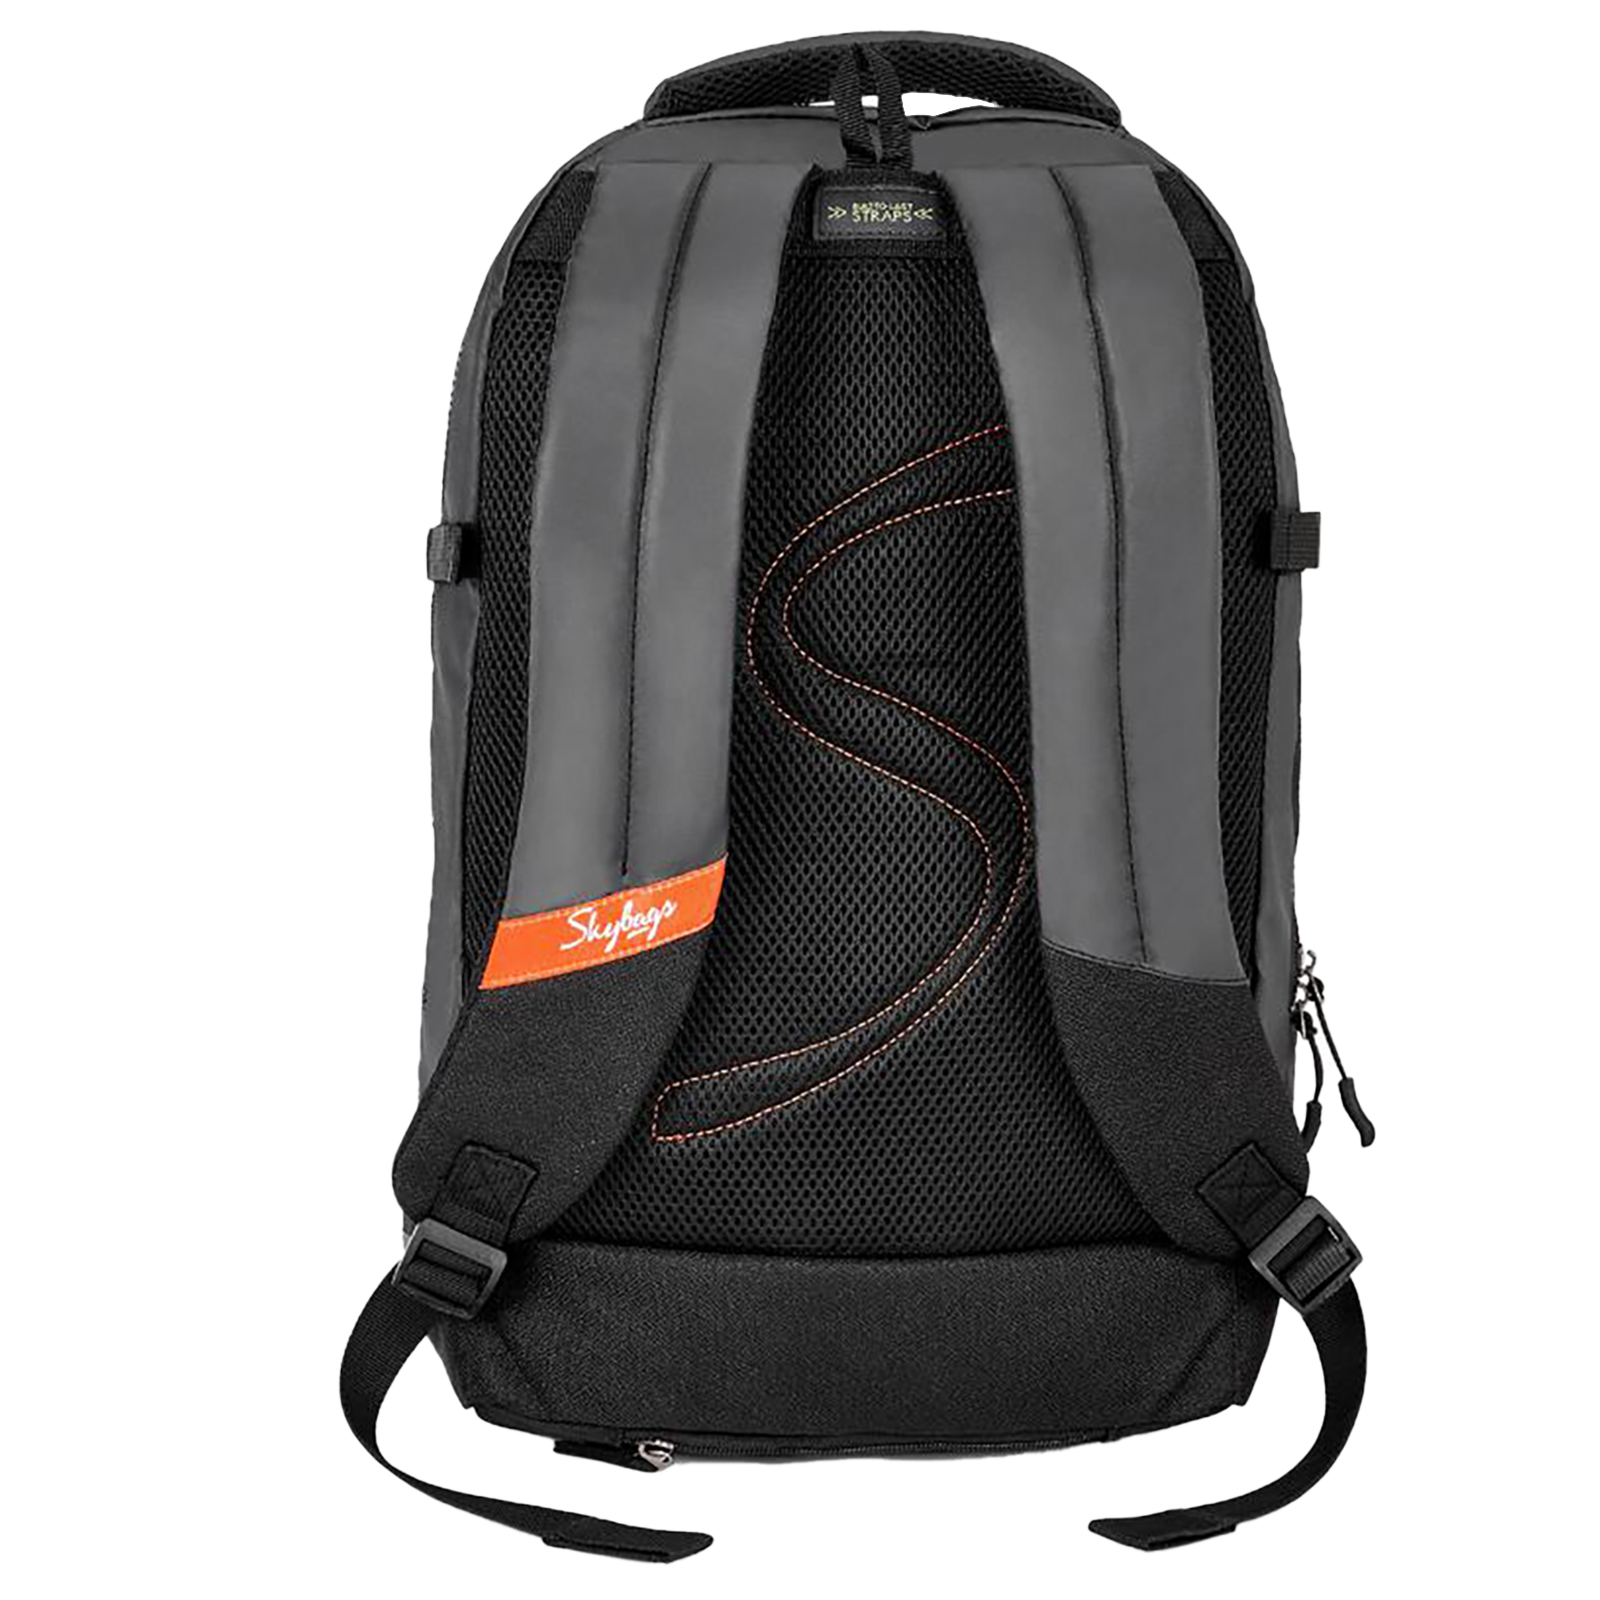 Sky Bags Boho 01 23 Litres Thermoplastic Elastomers Backpack (Rain Cover, BPBOH1RBLK, Black)_3